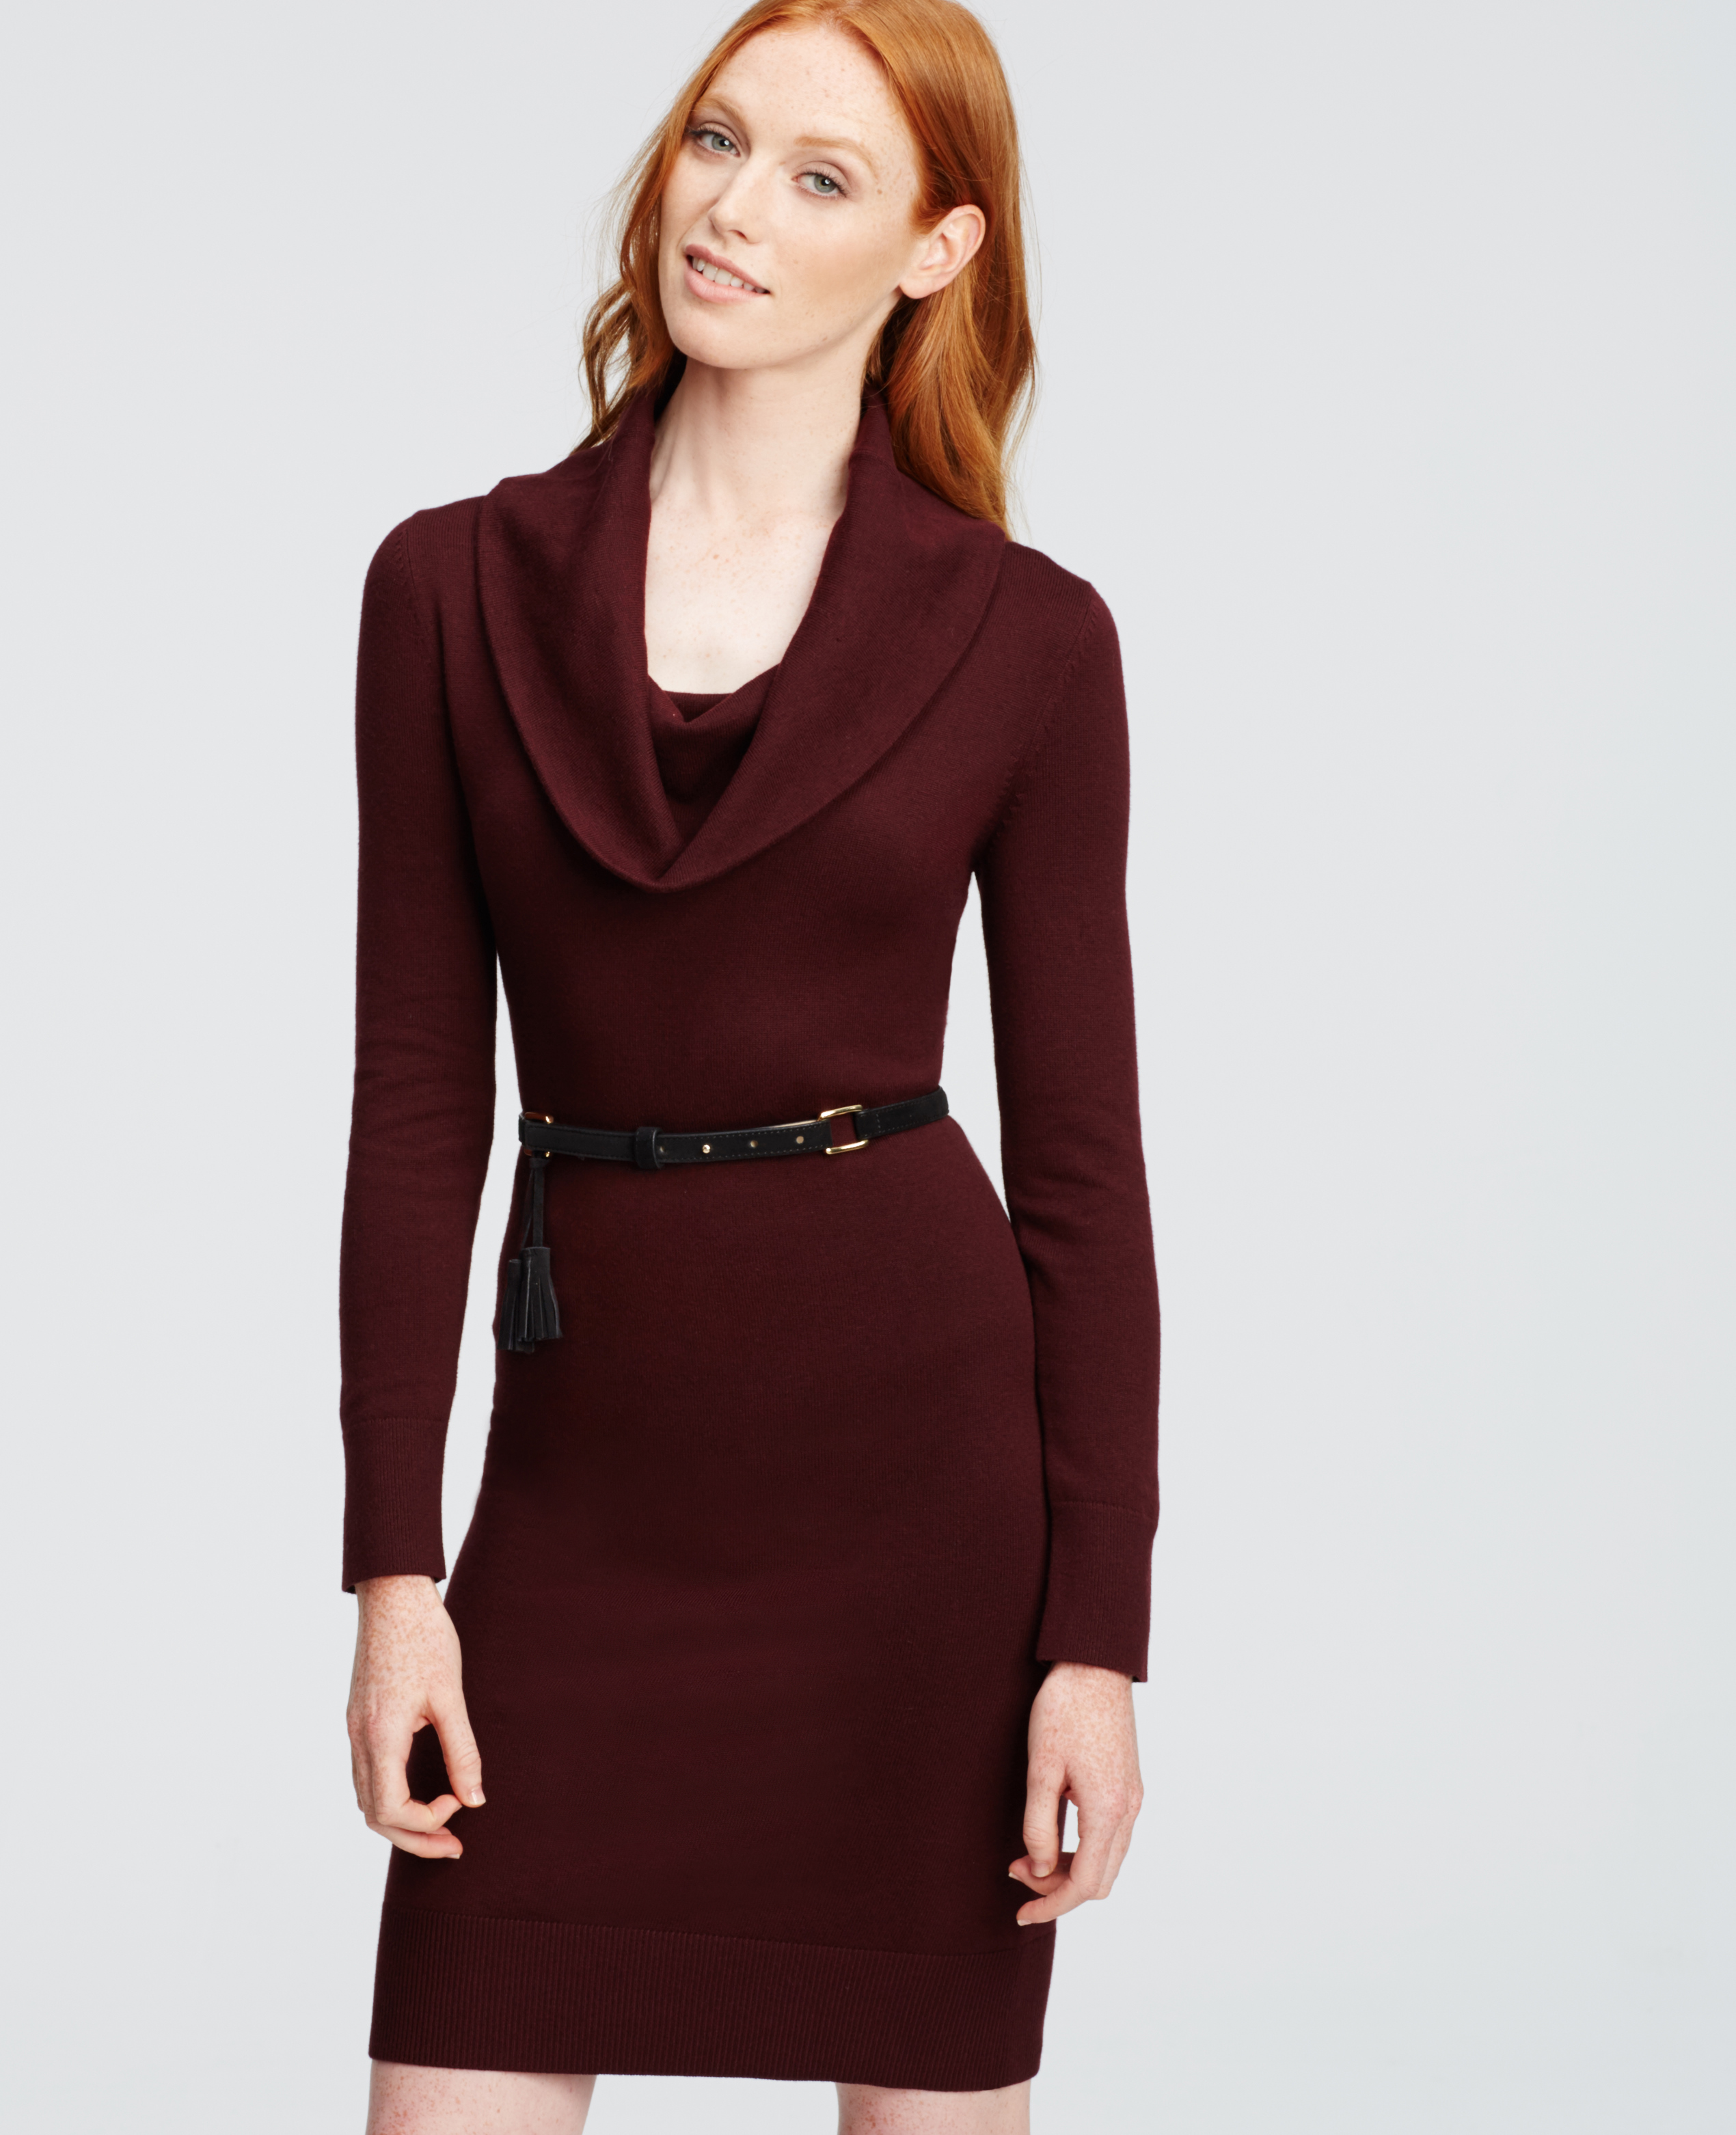 Ann taylor Petite Cowl Neck Sweater Dress in Purple | Lyst